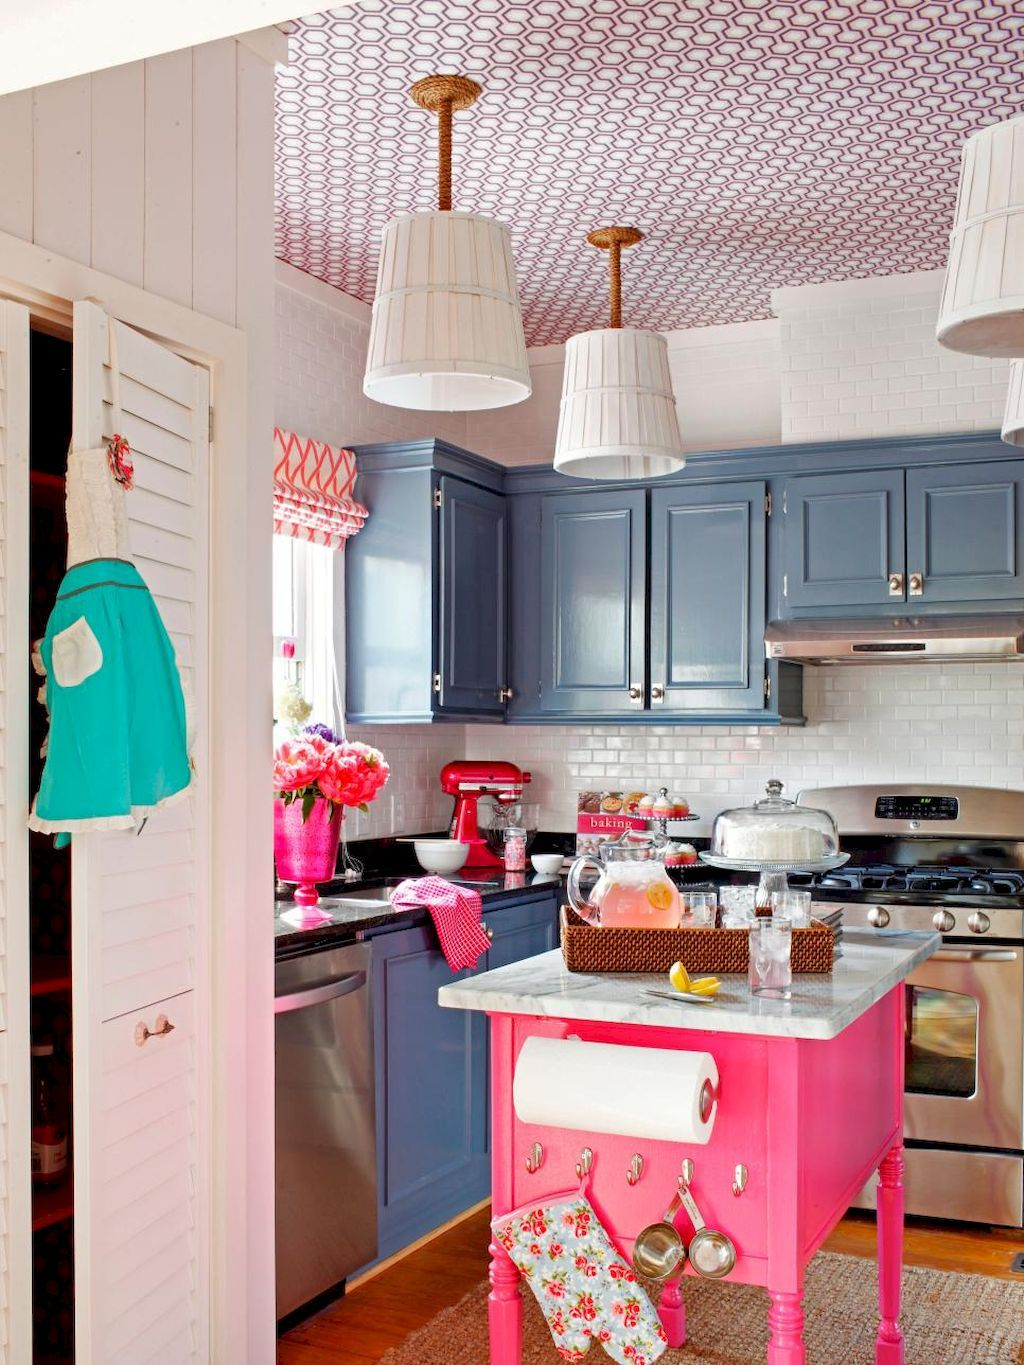 40 Brilliant Kitchen Ideas On A Budget For Small Spaces